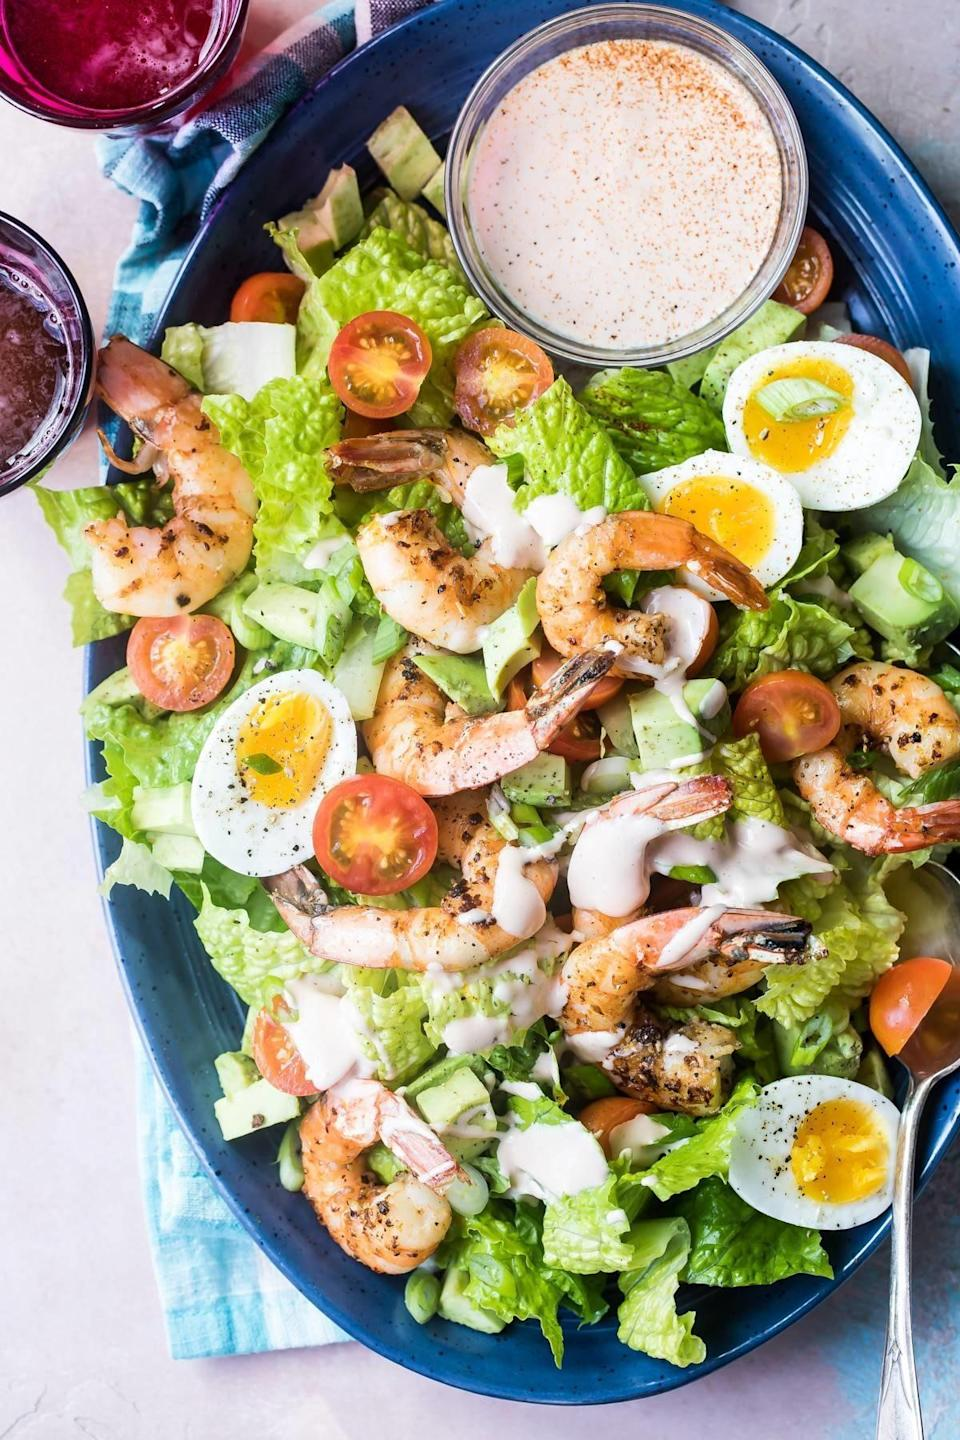 Shrimp Louie salad with hard boiled egg, tomato, lettuce, and dressing.